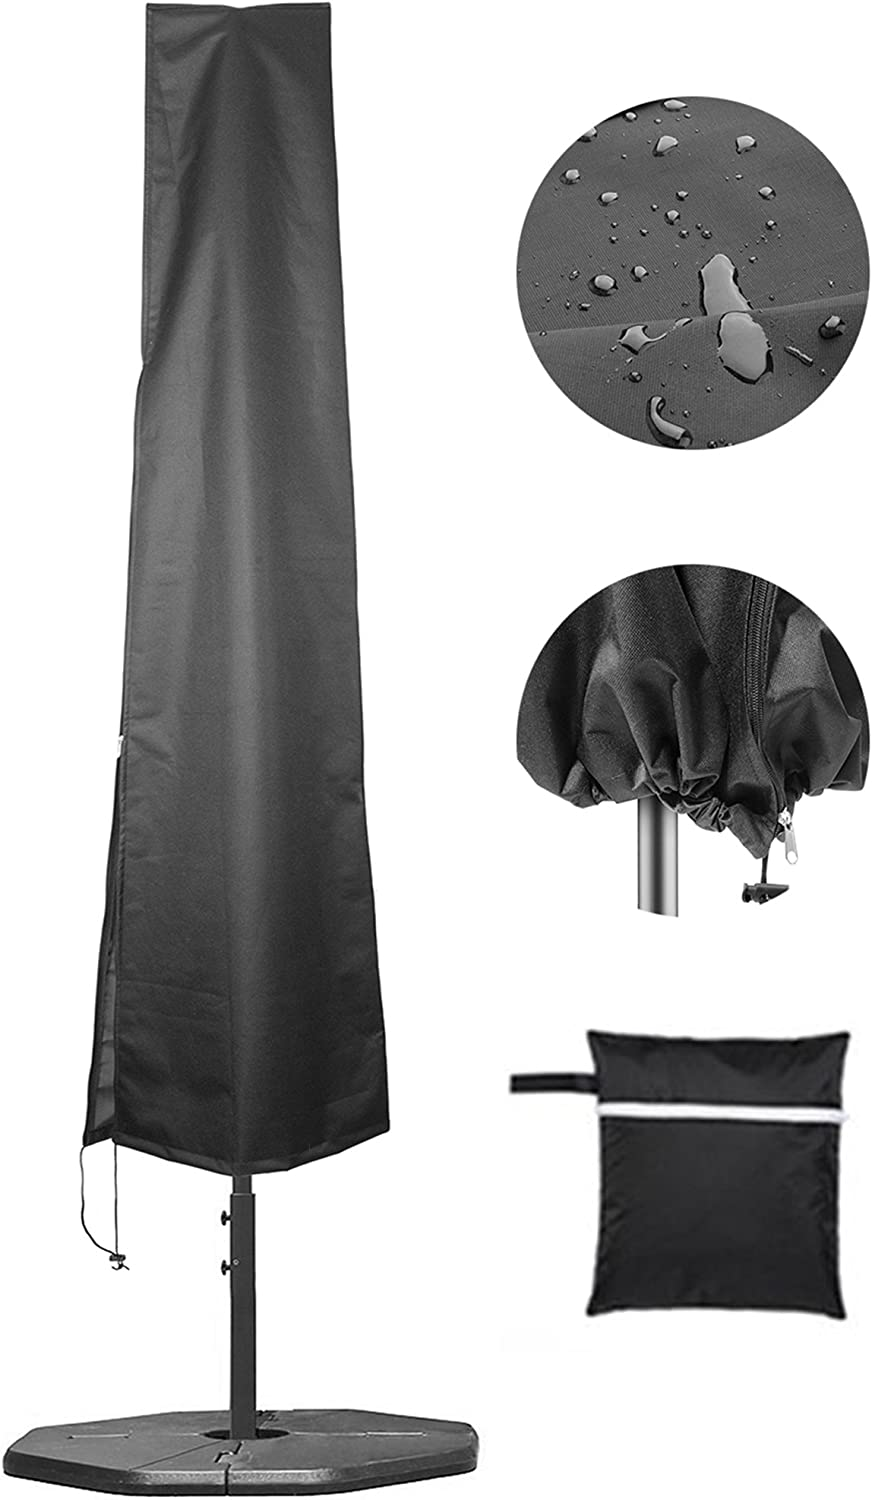 Umbrella Covers, Patio Waterproof Market Parasol Covers with Zipper for 7ft to 11ft Outdoor Umbrellas Large : Garden & Outdoor